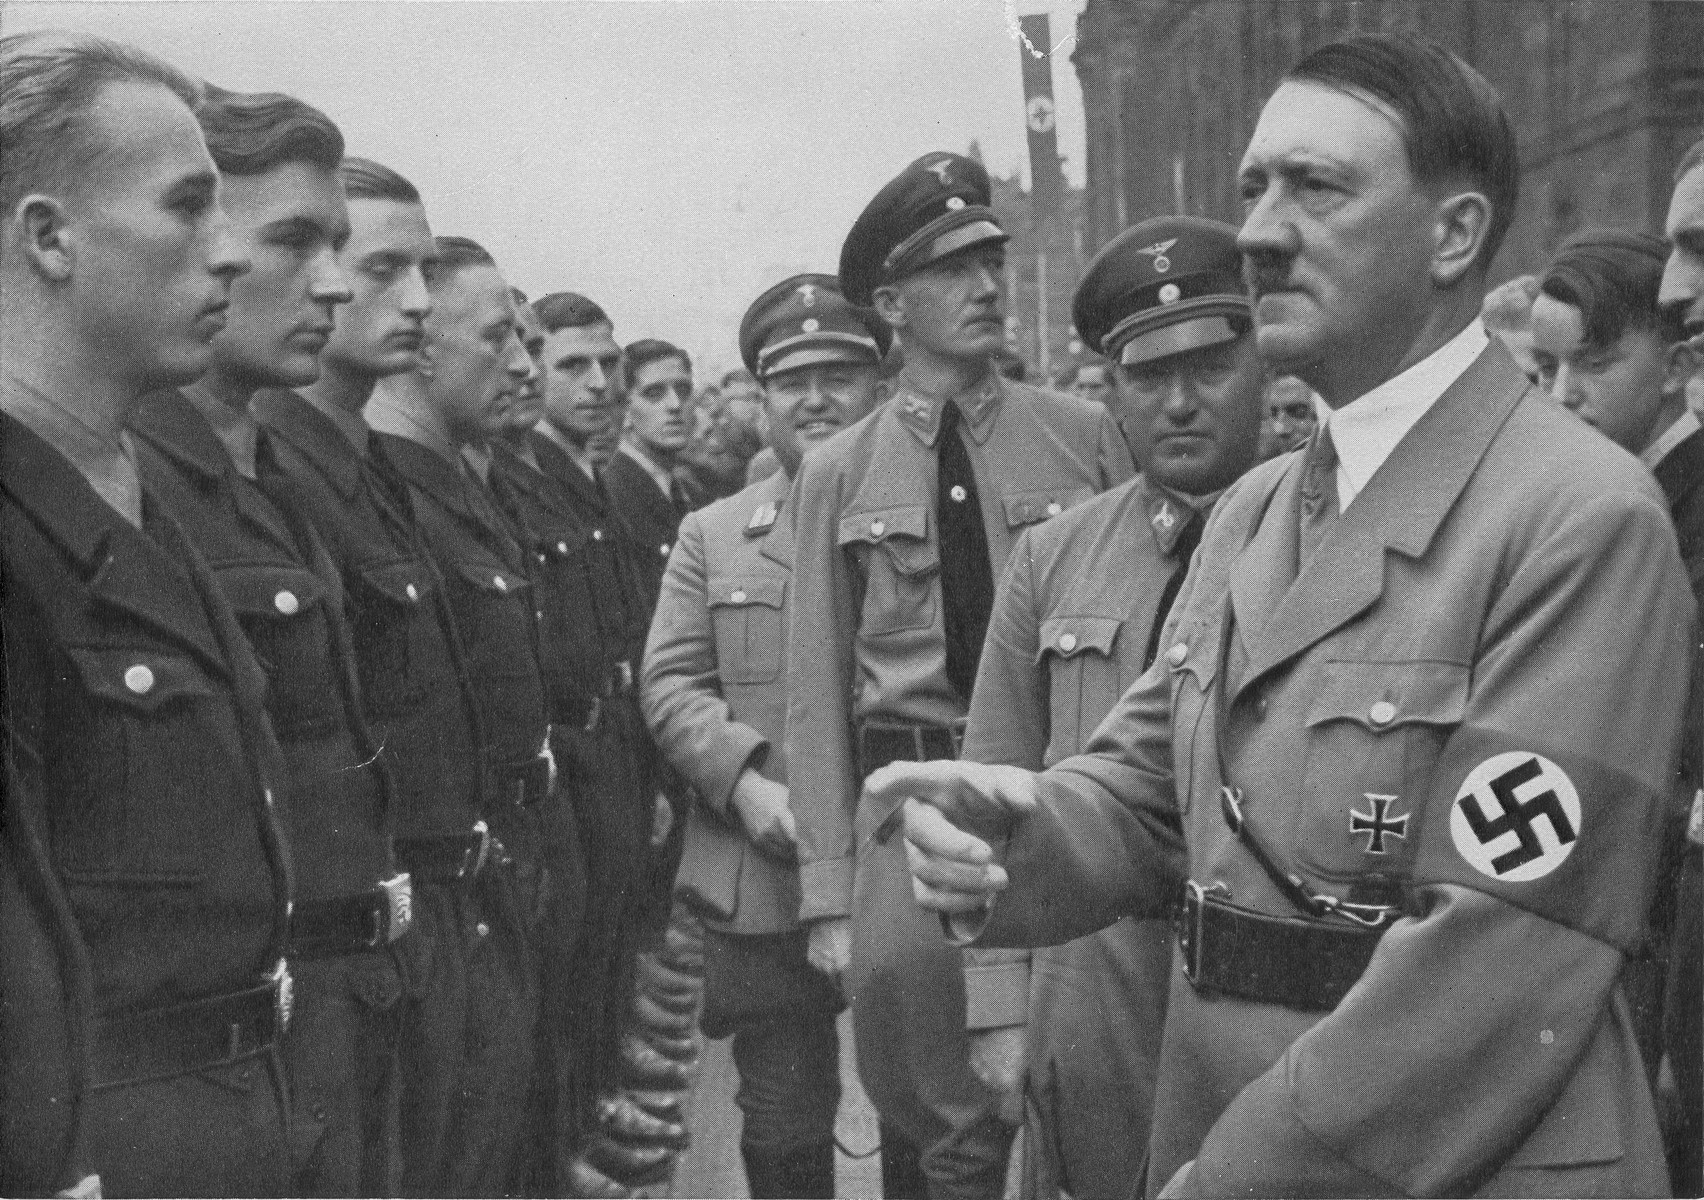 Adolf Hitler and Robert Ley review a unit of DAF (Deutsche Arbeitsfront) workers at Reichsparteitag (Reich Party Day) ceremonies in Nuremberg.